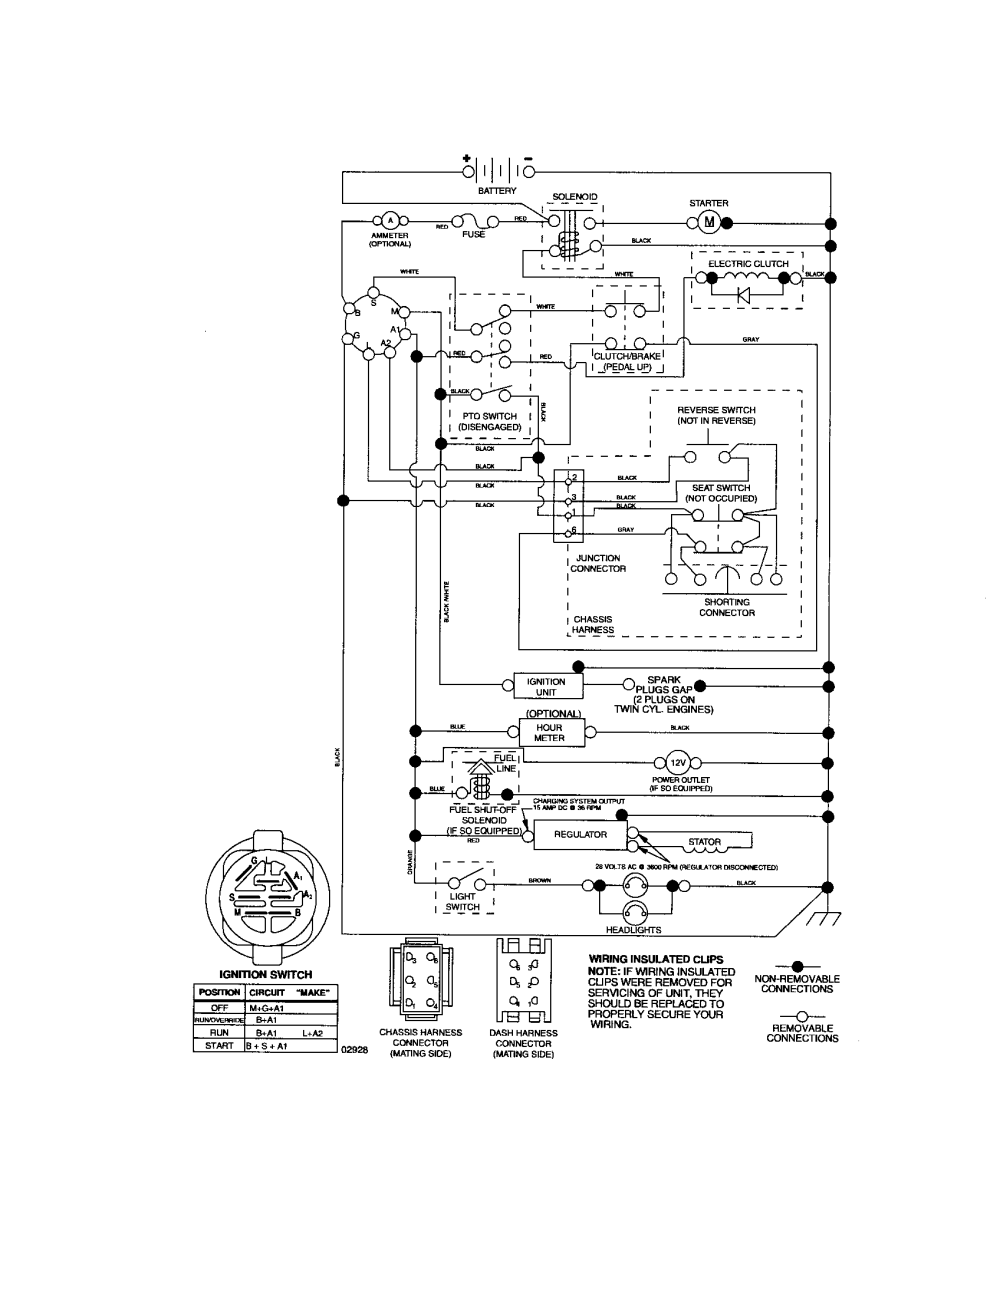 medium resolution of looking for craftsman model 917276884 front engine lawn tractor fs5500 craftsman tractor wiring diagram